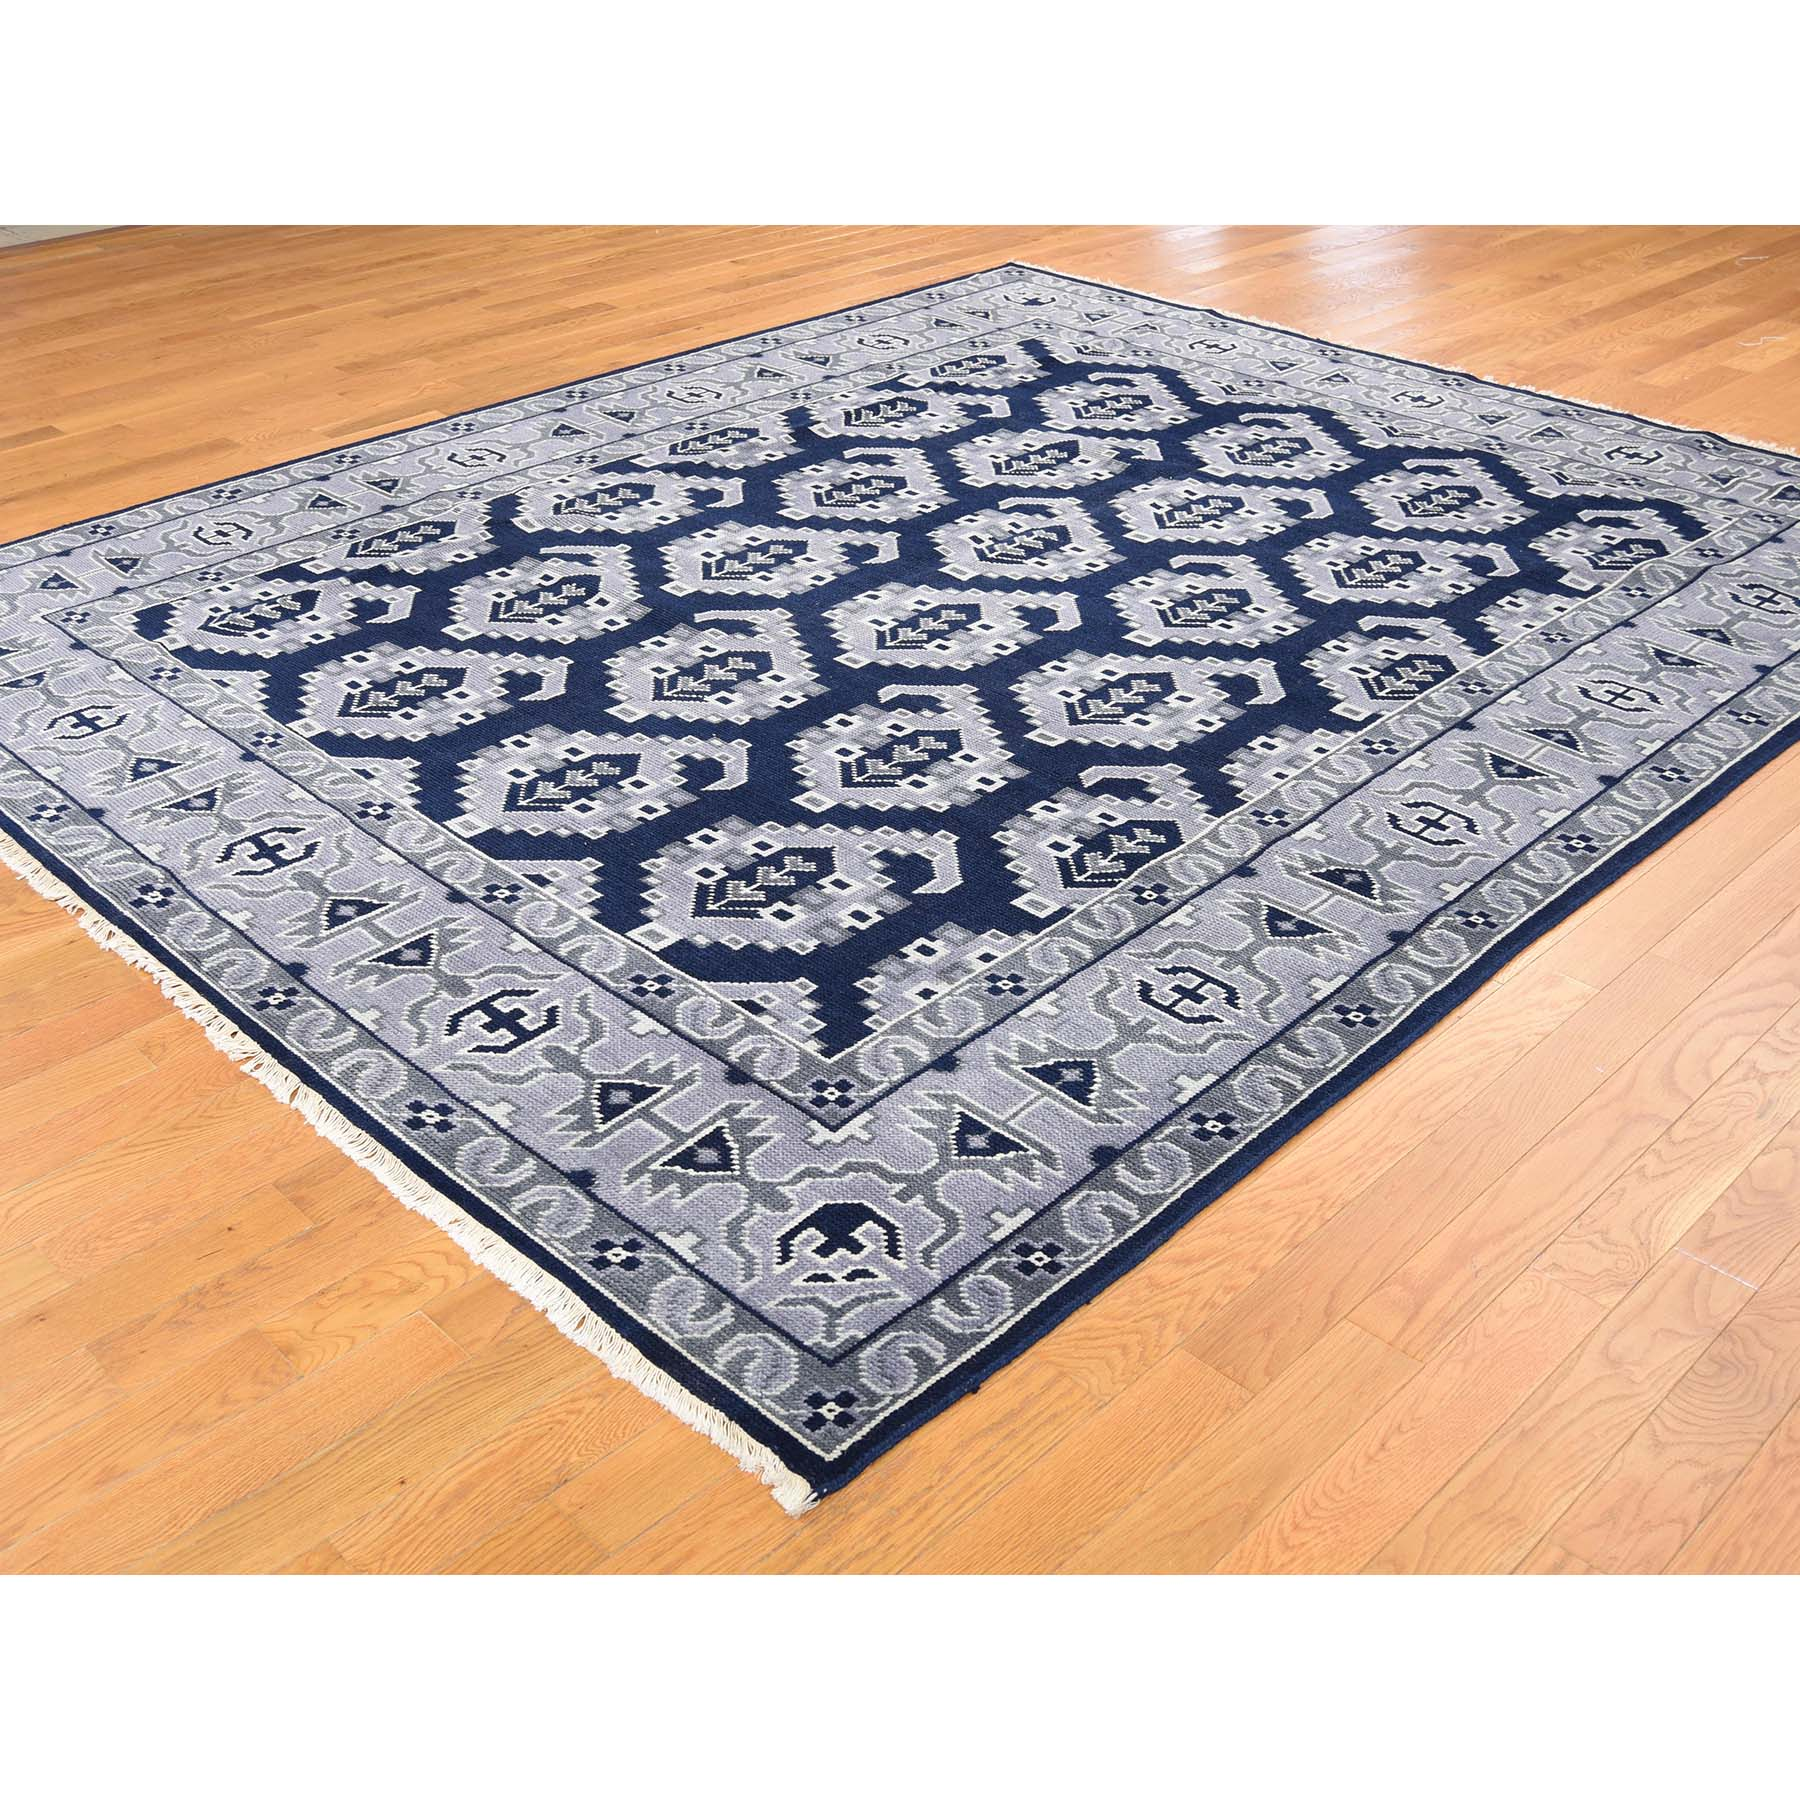 8-1--x9-10-- Hand-Knotted Turkish Knot Boteh Design Pure Wool Rug